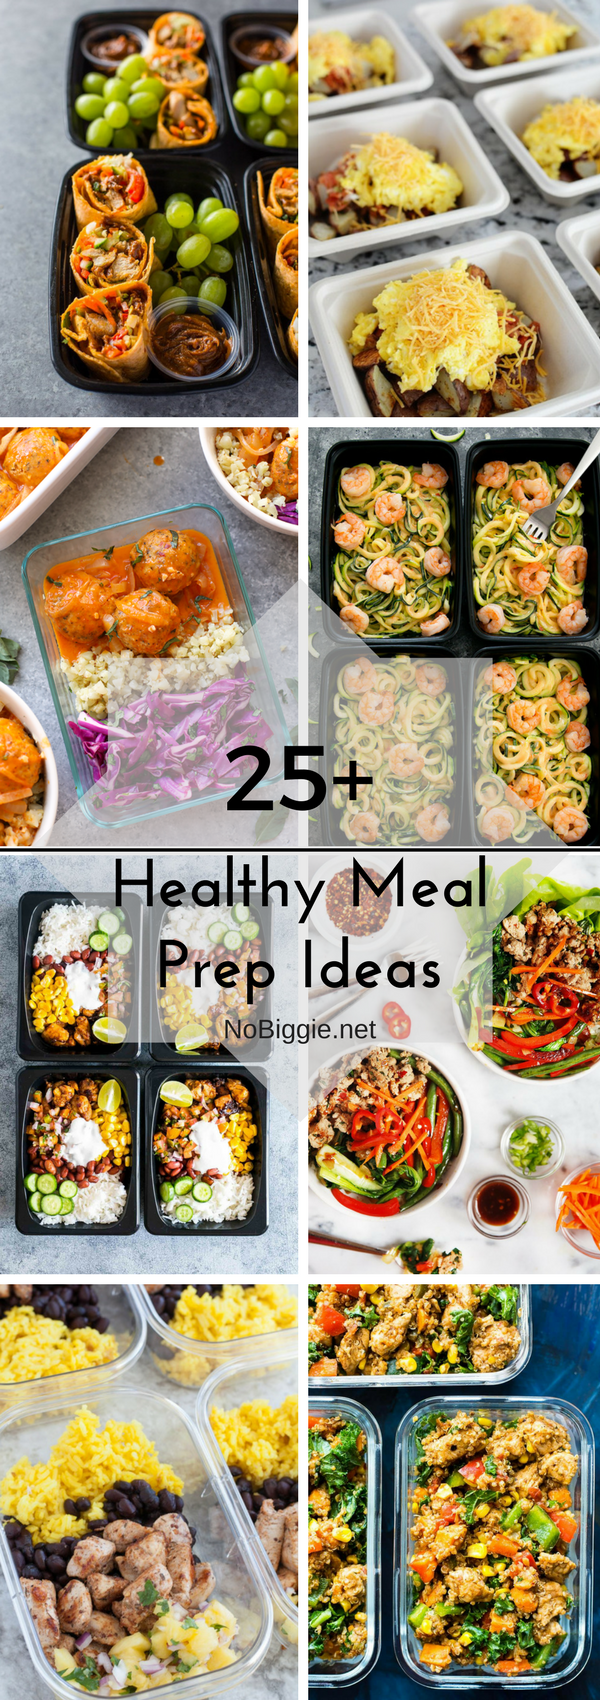 25+ Healthy Meal Prep Ideas 25+ healthy meal prep ideas Healthy Meal Prep Ideas 25+ healthy meal prep ideas | 25+ healthy meal prep ideas |